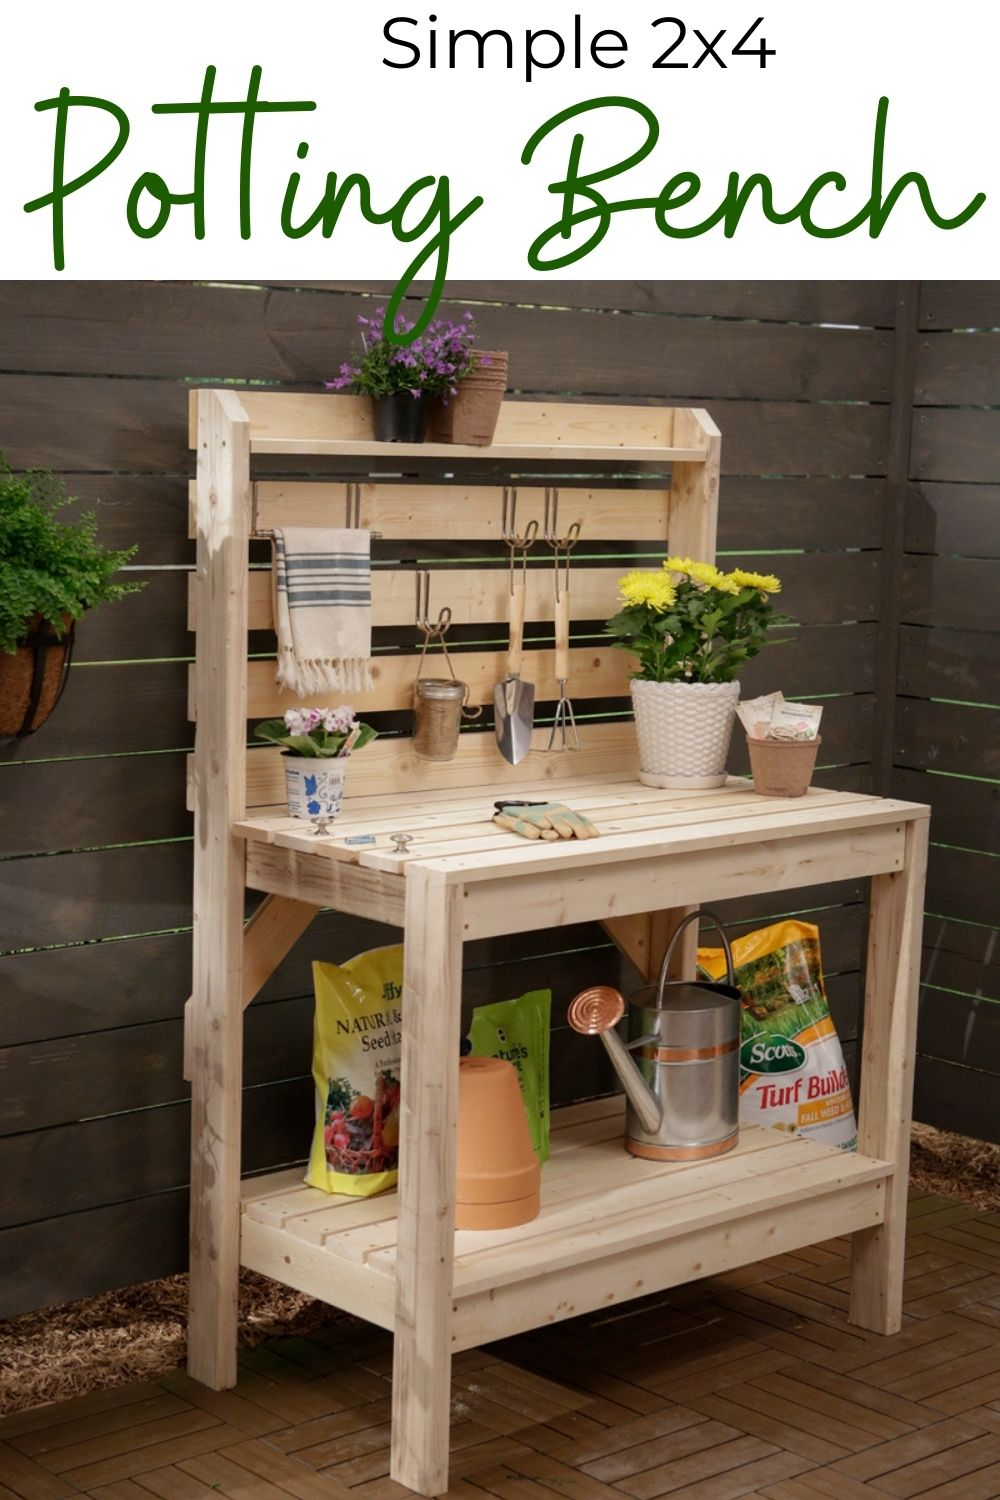 Simple 2x4 Potting Bench